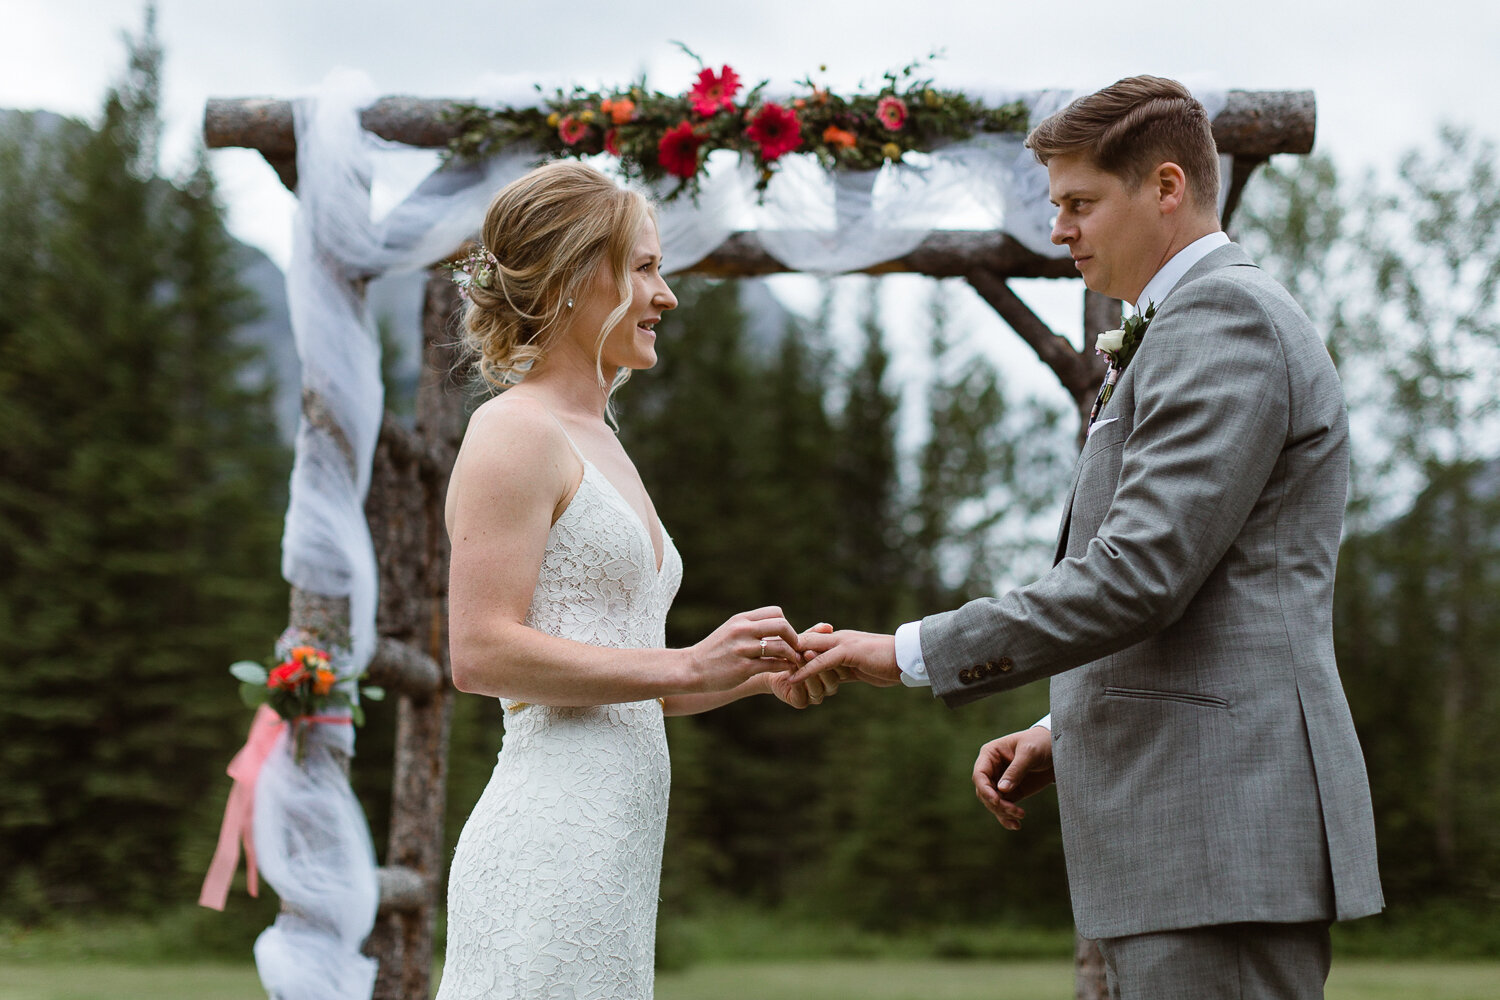 69-Canmore-Alberta-Real-Wedding-Best-Wedding-Photographers-97.JPG